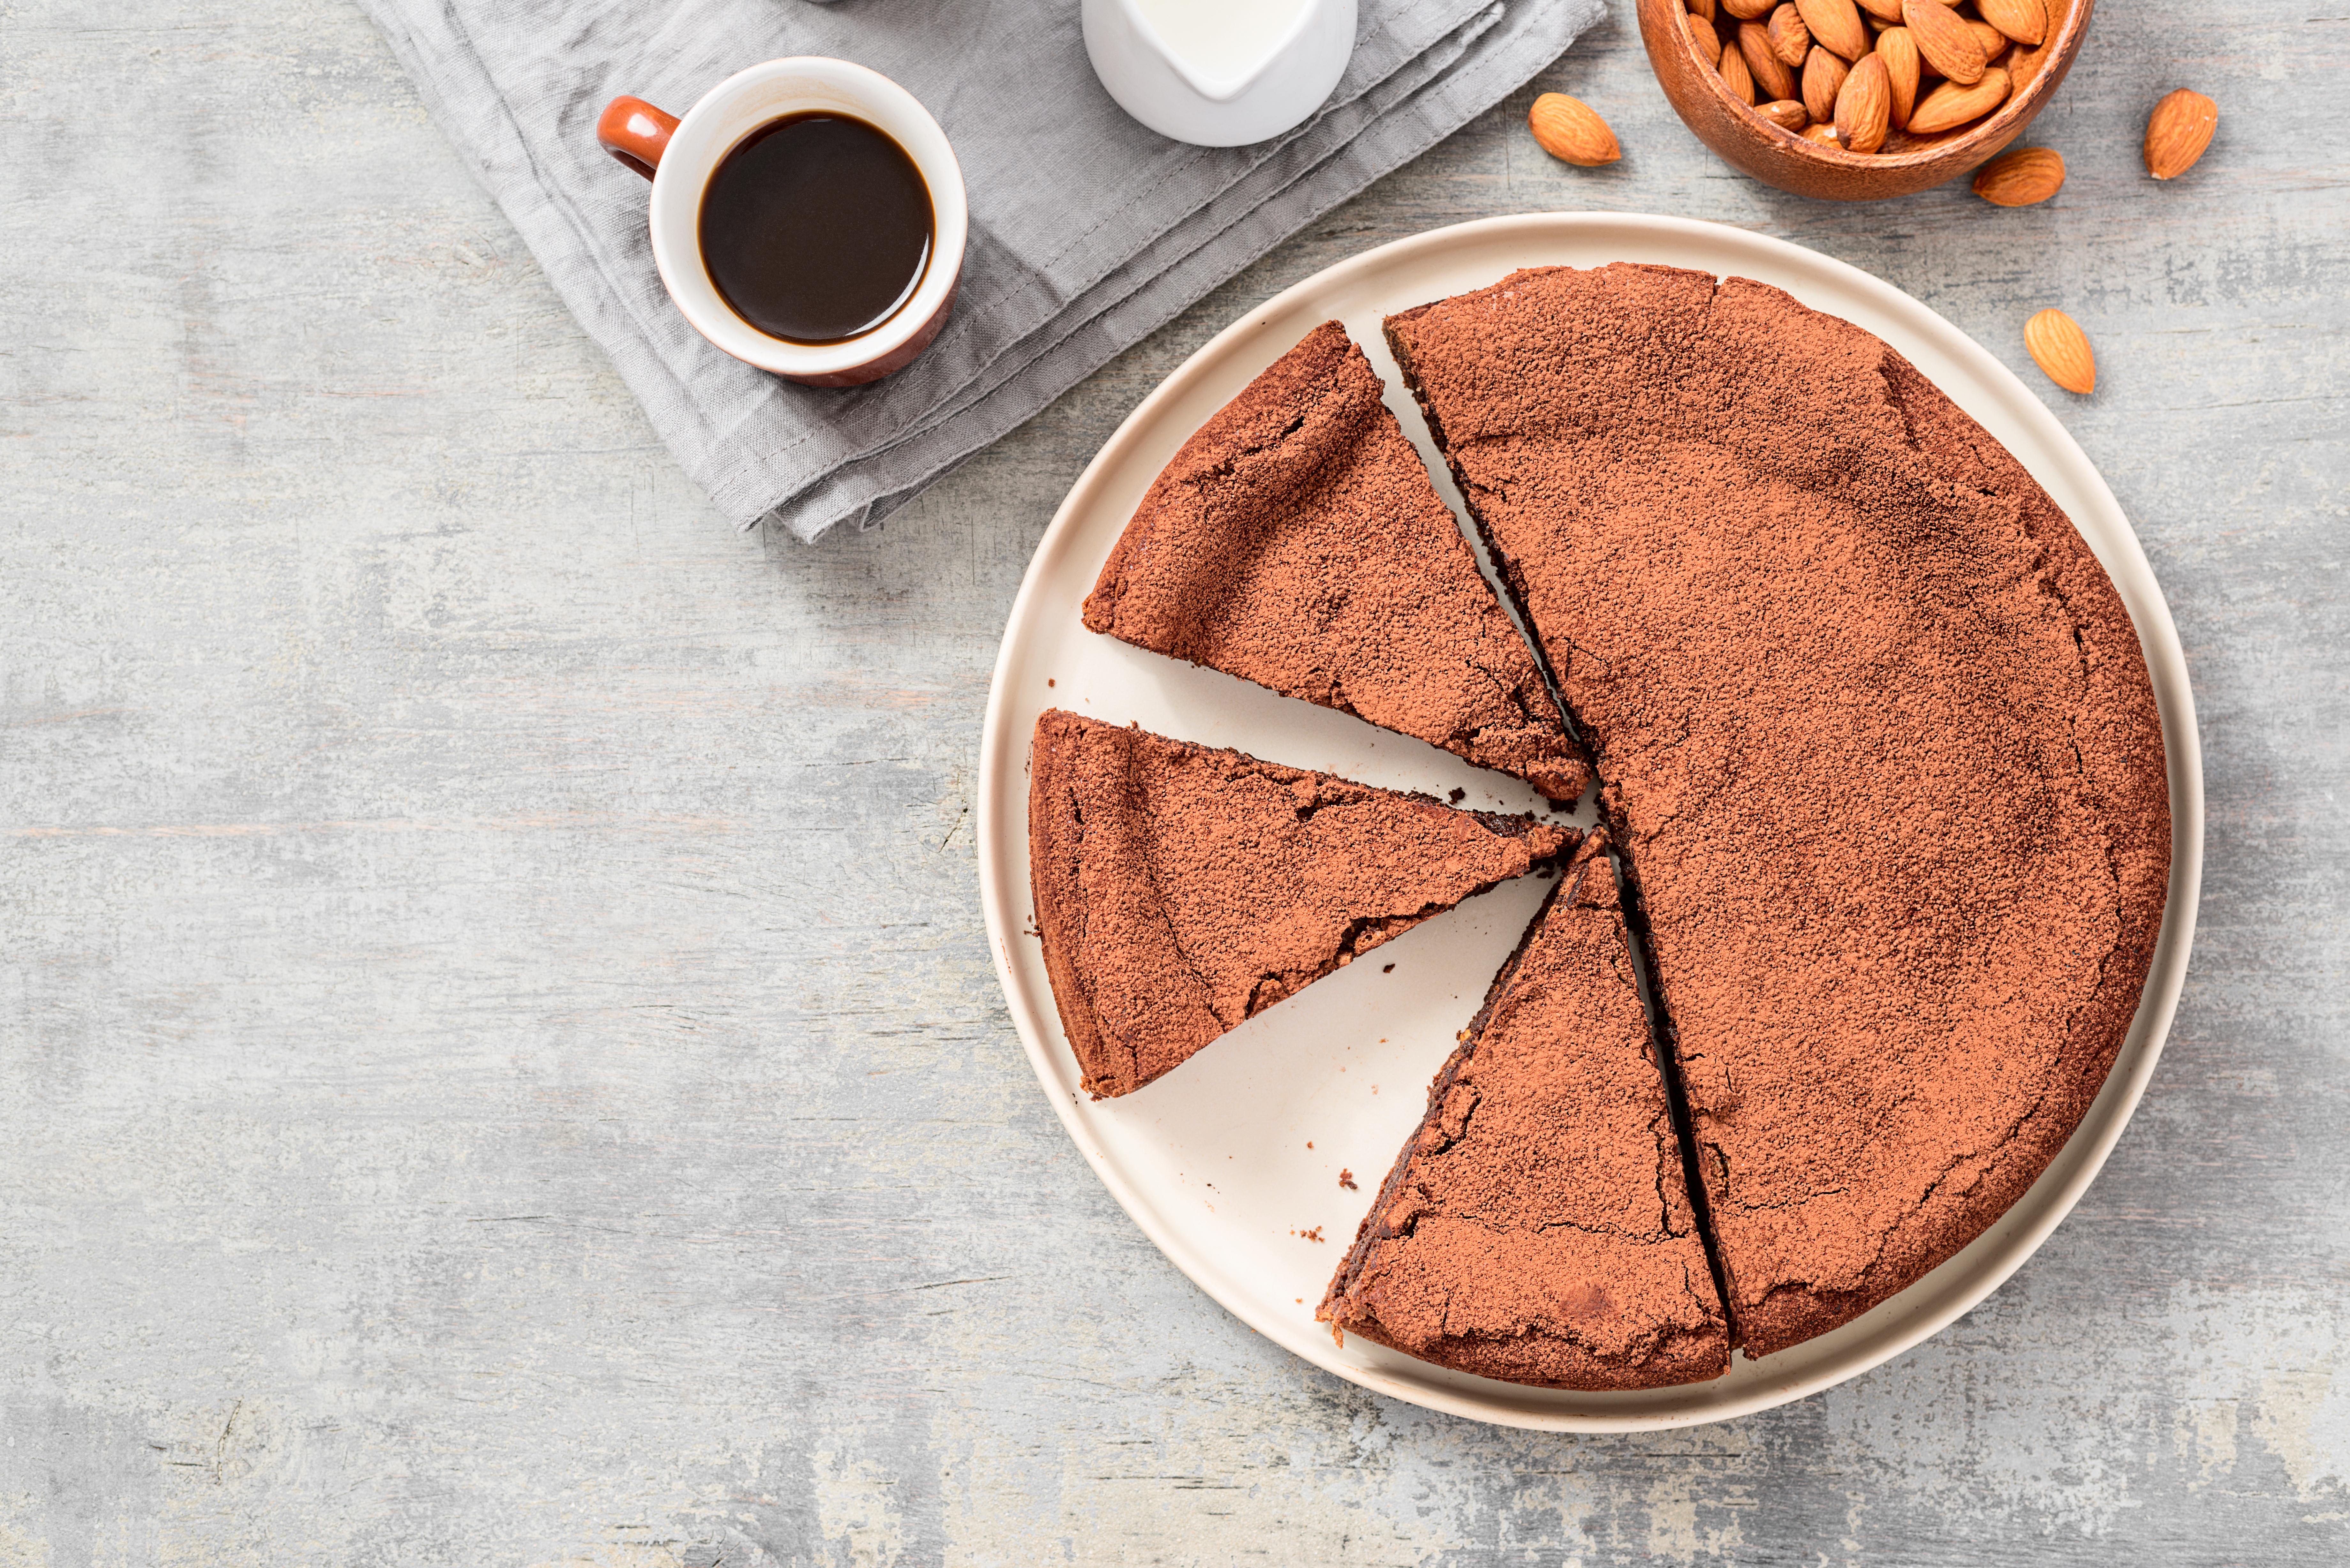 A flourless chocolate cake, seen from above, sits on a table next to a cup of coffee and a bowl of almonds.